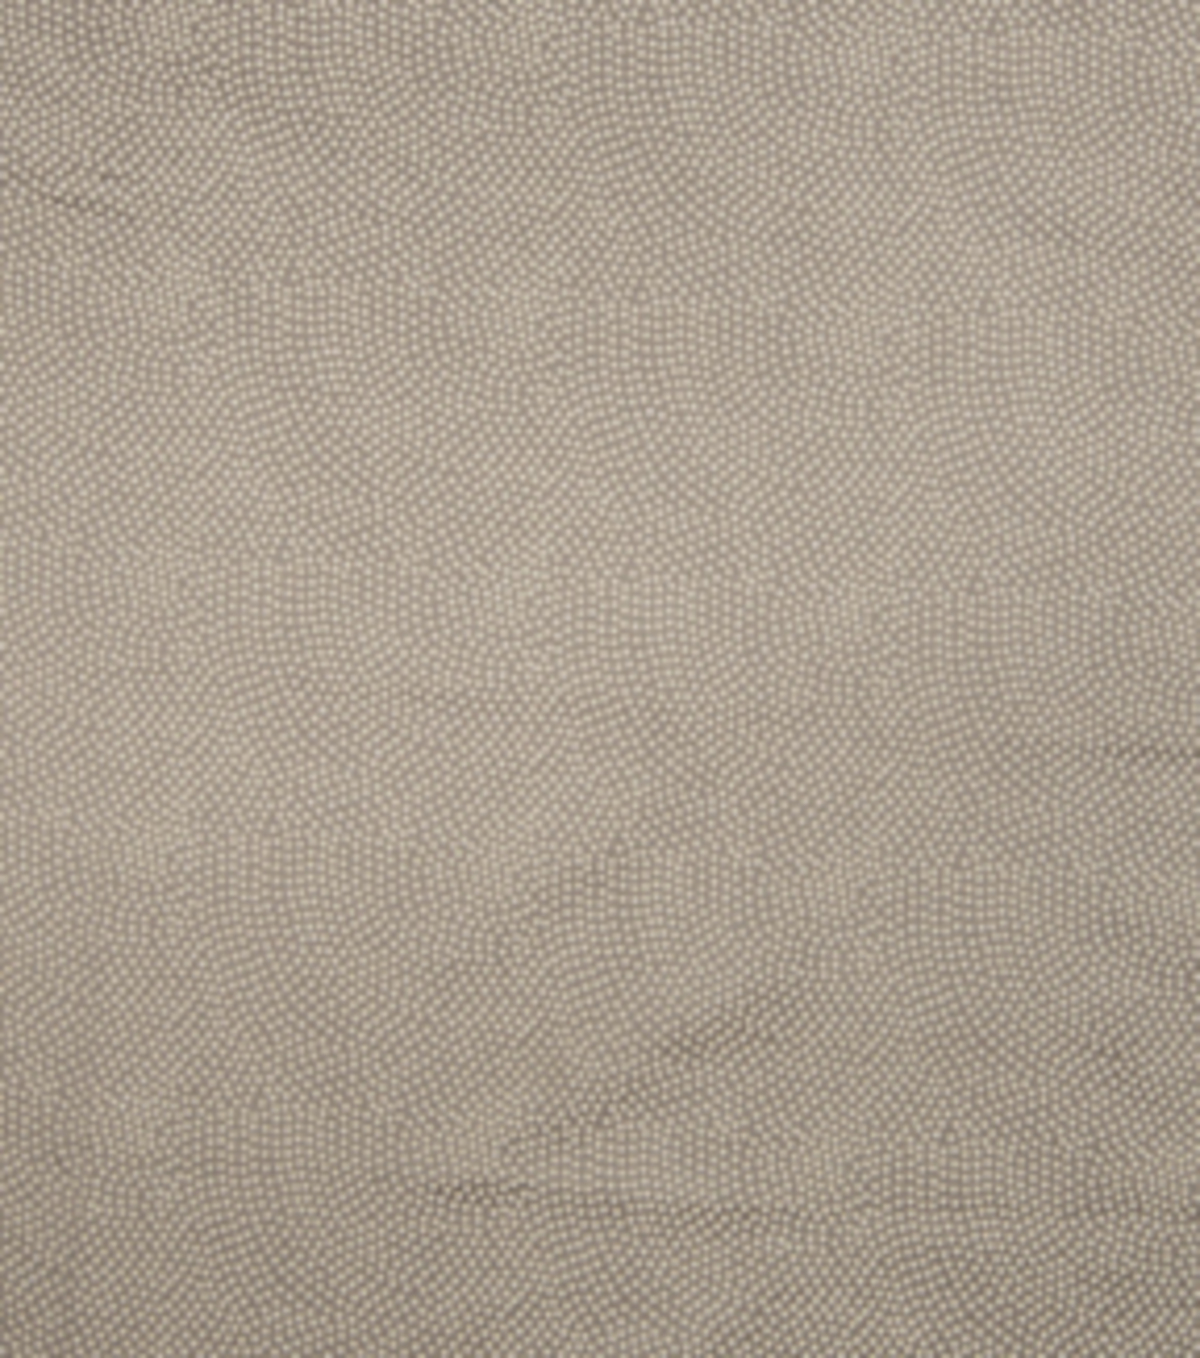 Home Decor 8\u0022x8\u0022 Fabric Swatch-Upholstery Fabric Eaton Square Buffet Stone